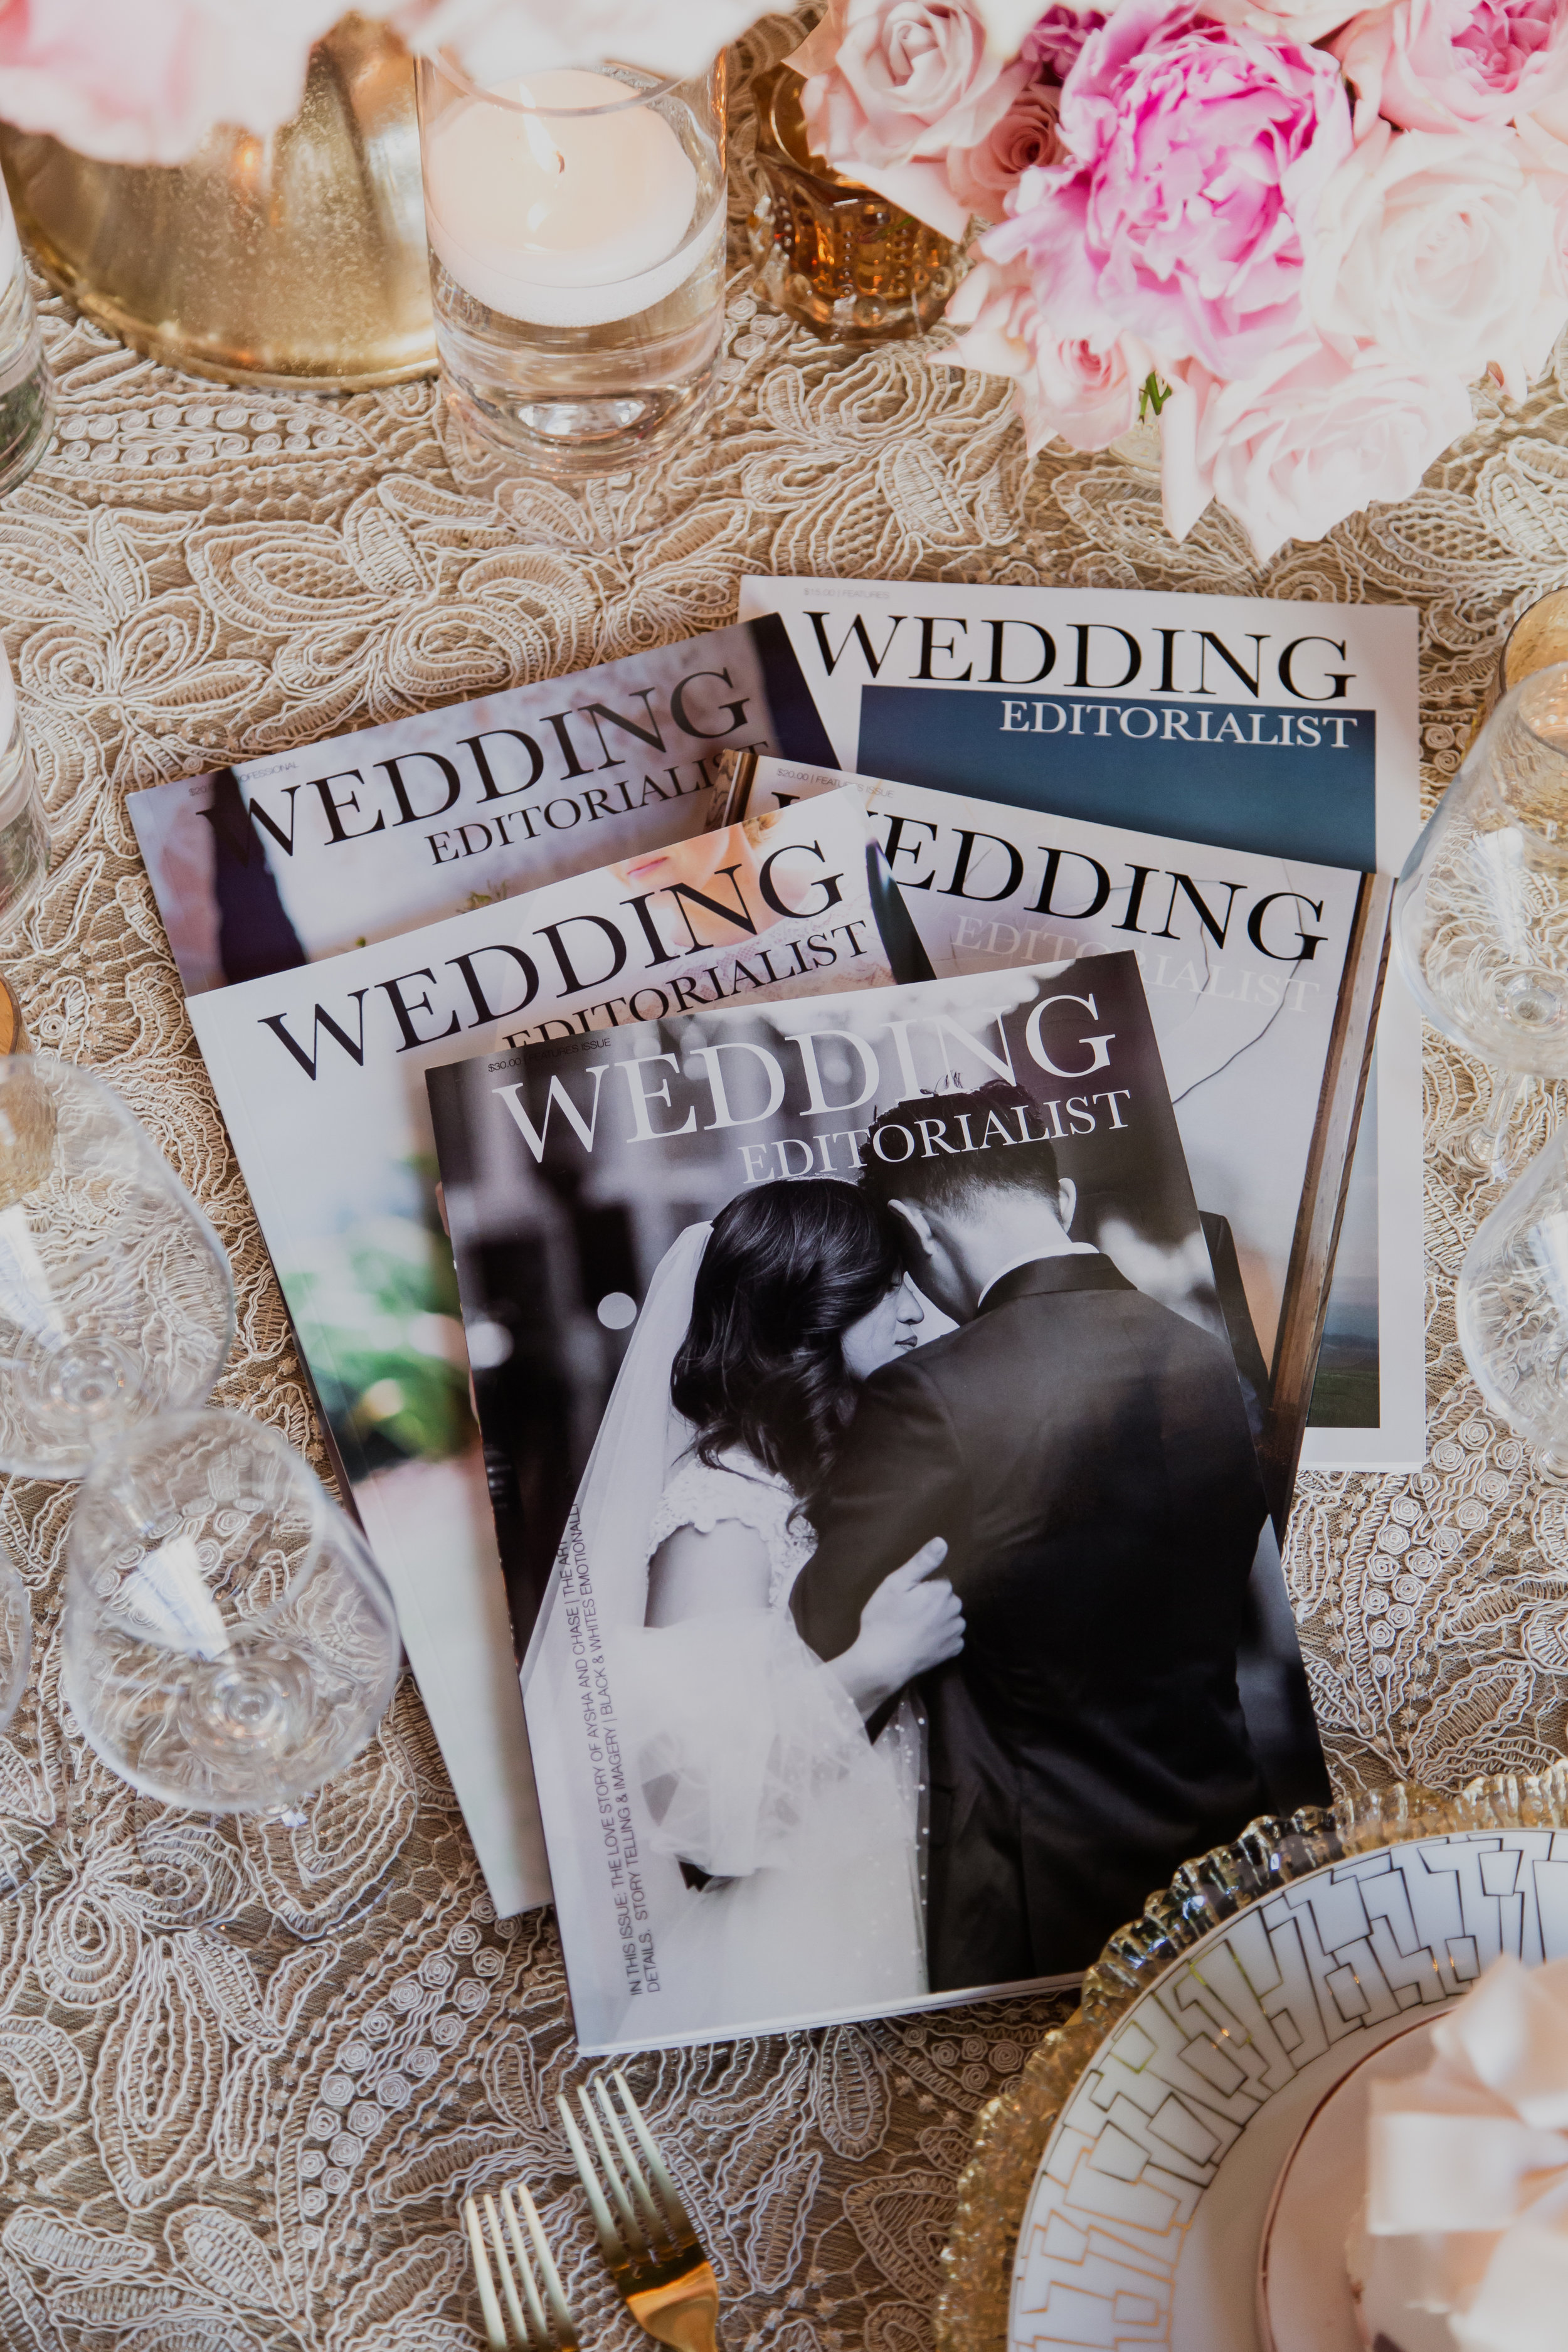 Create your own custom wedding magazine. The Wedding Editorialist publishes beautiful, personalized wedding magazines online and in print. Photo by Adam Frazier.